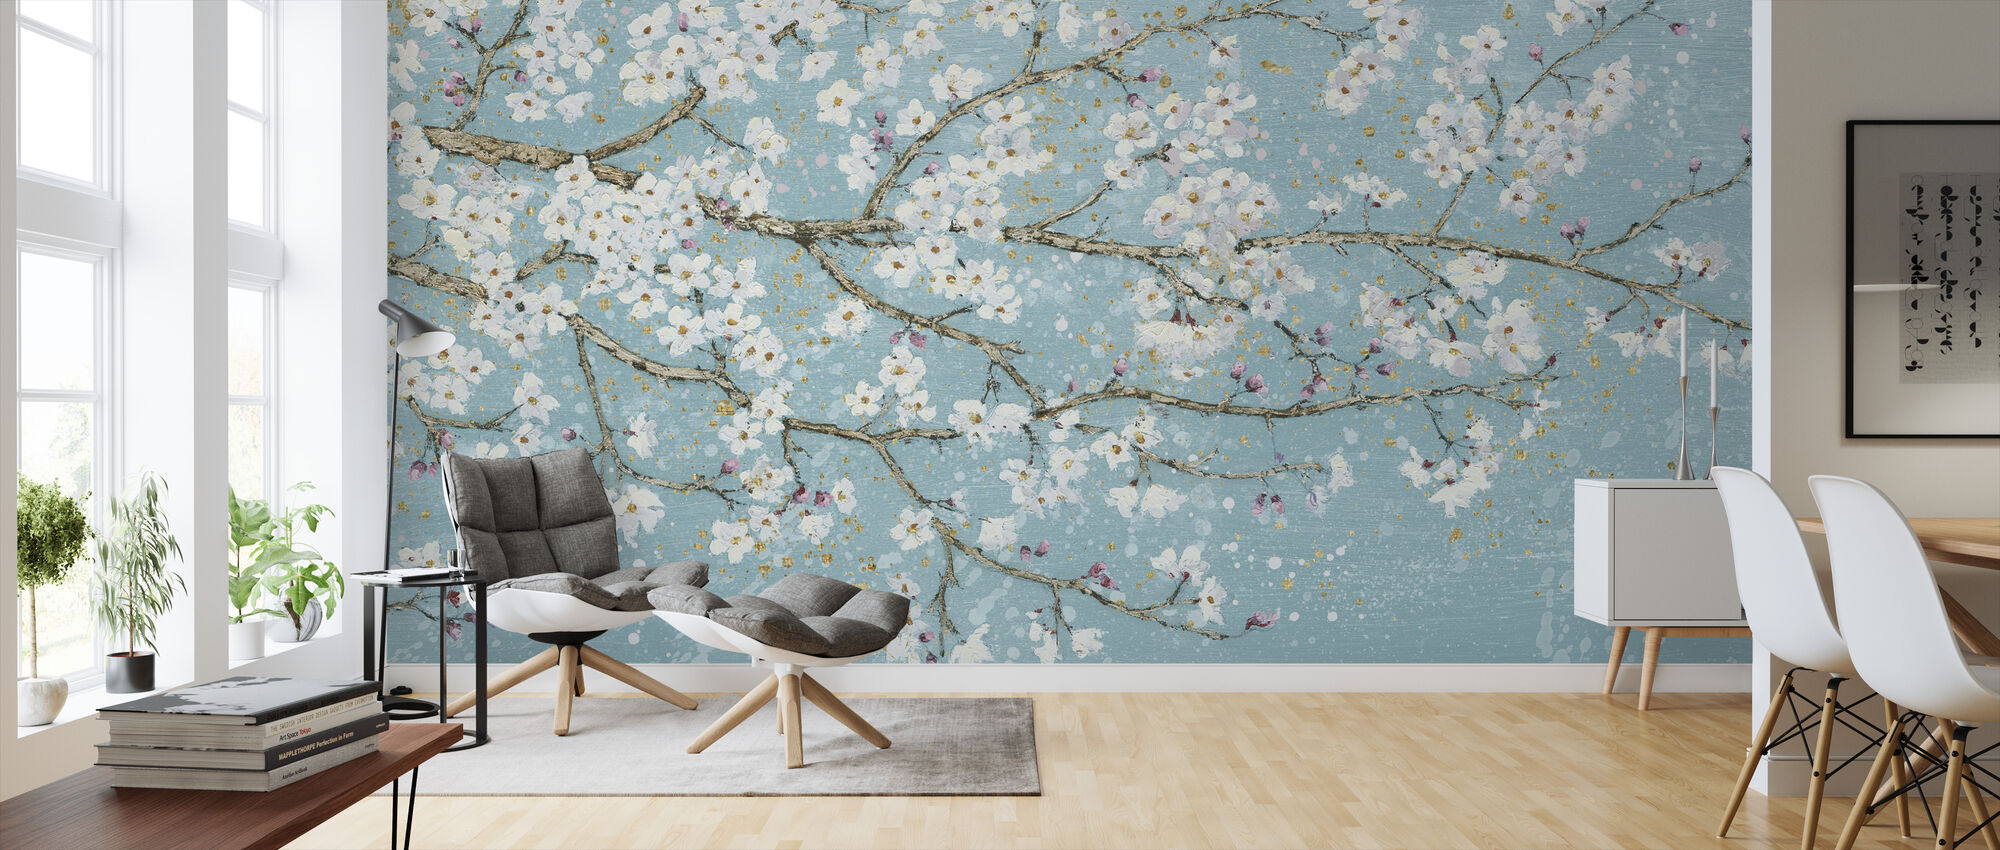 April Breeze I Teal - Wallpaper - Living Room